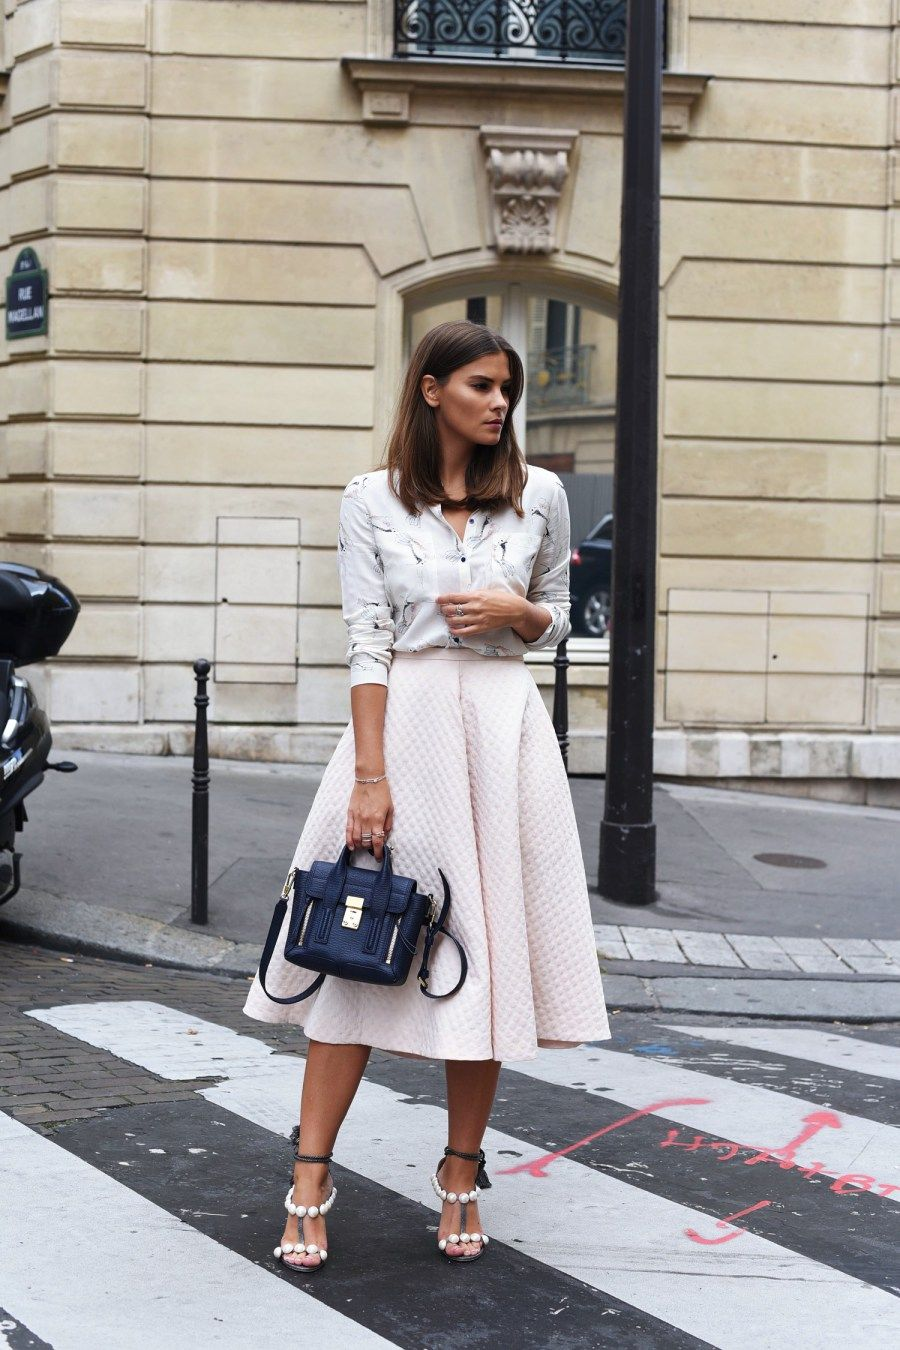 Blush Bird Blouse Midi Skirt Navy 3 1 Phillip Lim Mini Pashli Bag Grey Ankle Strap Heeled Sandals With Perlen Late Summer Outfit 2017fashiioncarpet